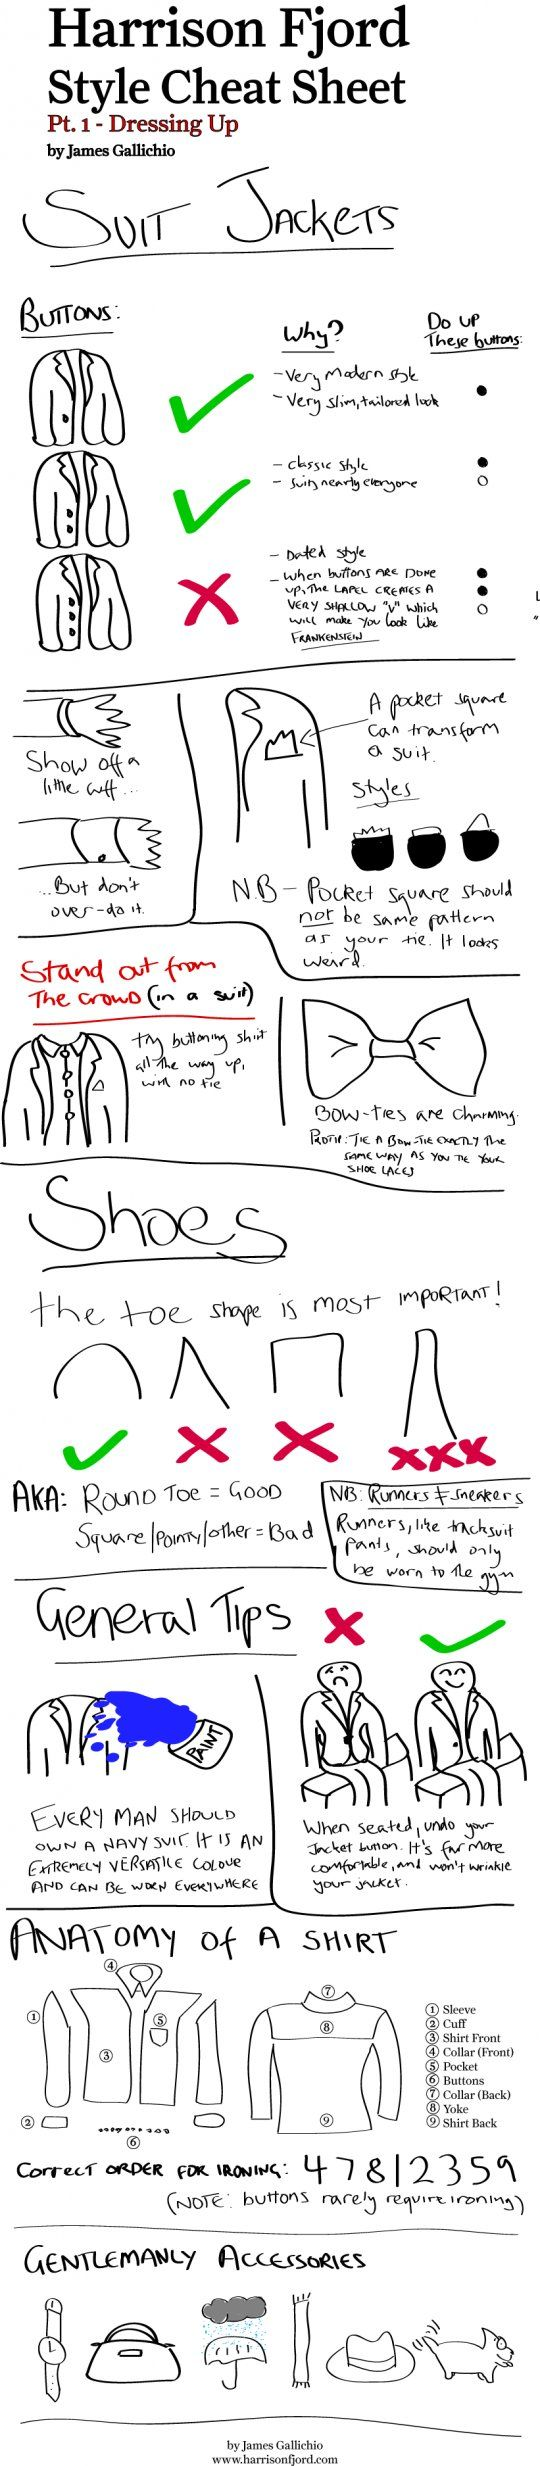 Guide for dress up for guys